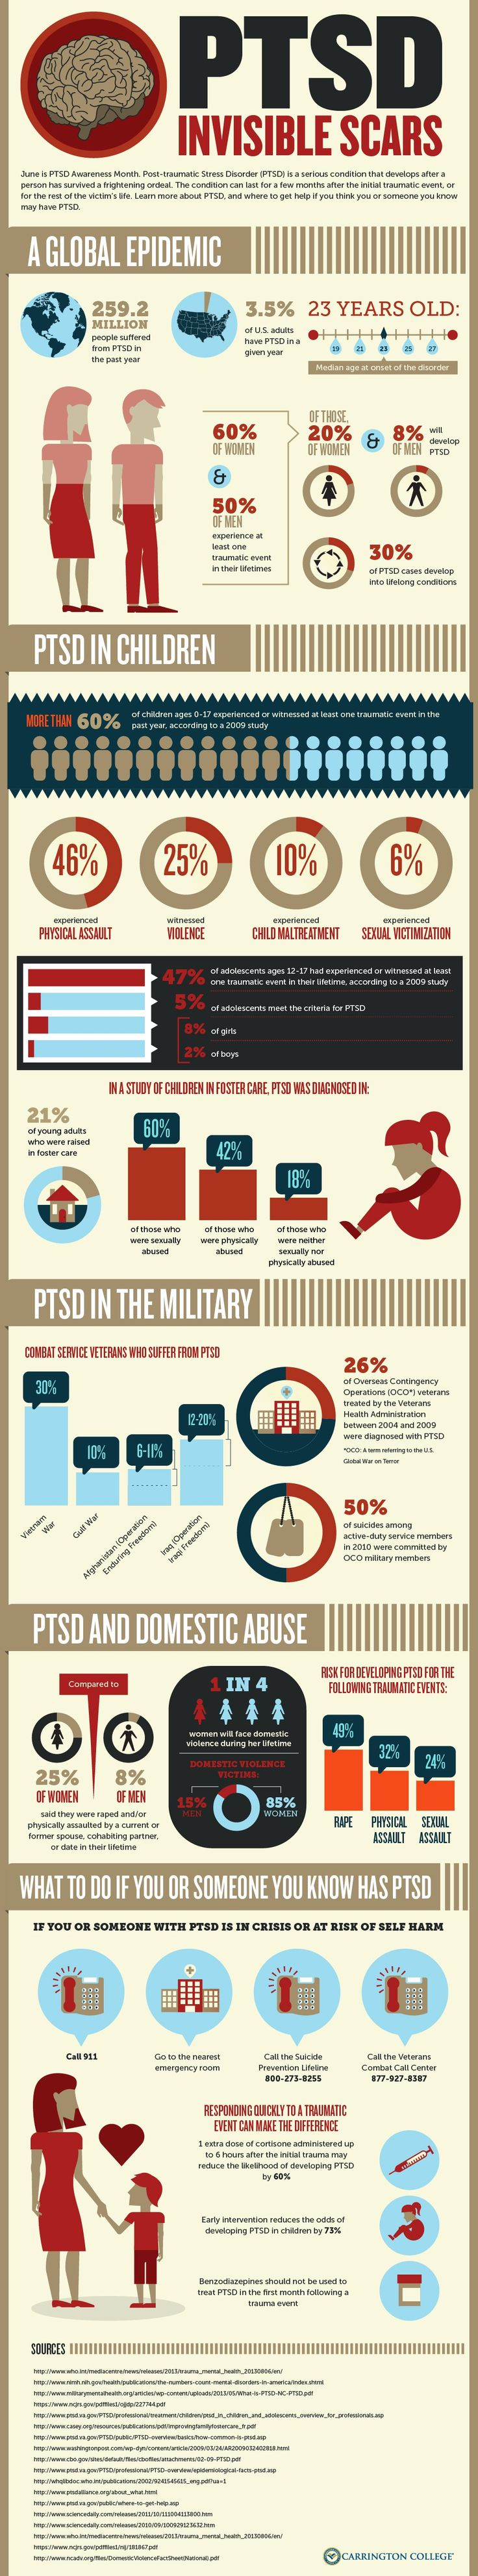 PTSD Statistics: Military, Domestic Abuse, Children and the World